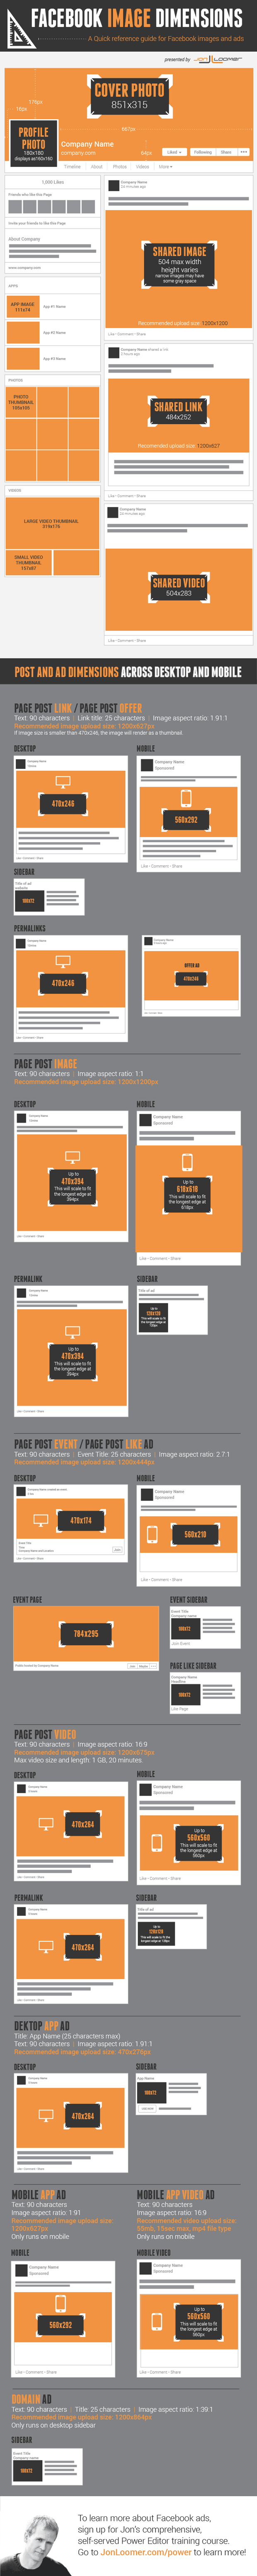 Facebook Cheat Sheet: Sizes and Dimensions 2014 [infographic]